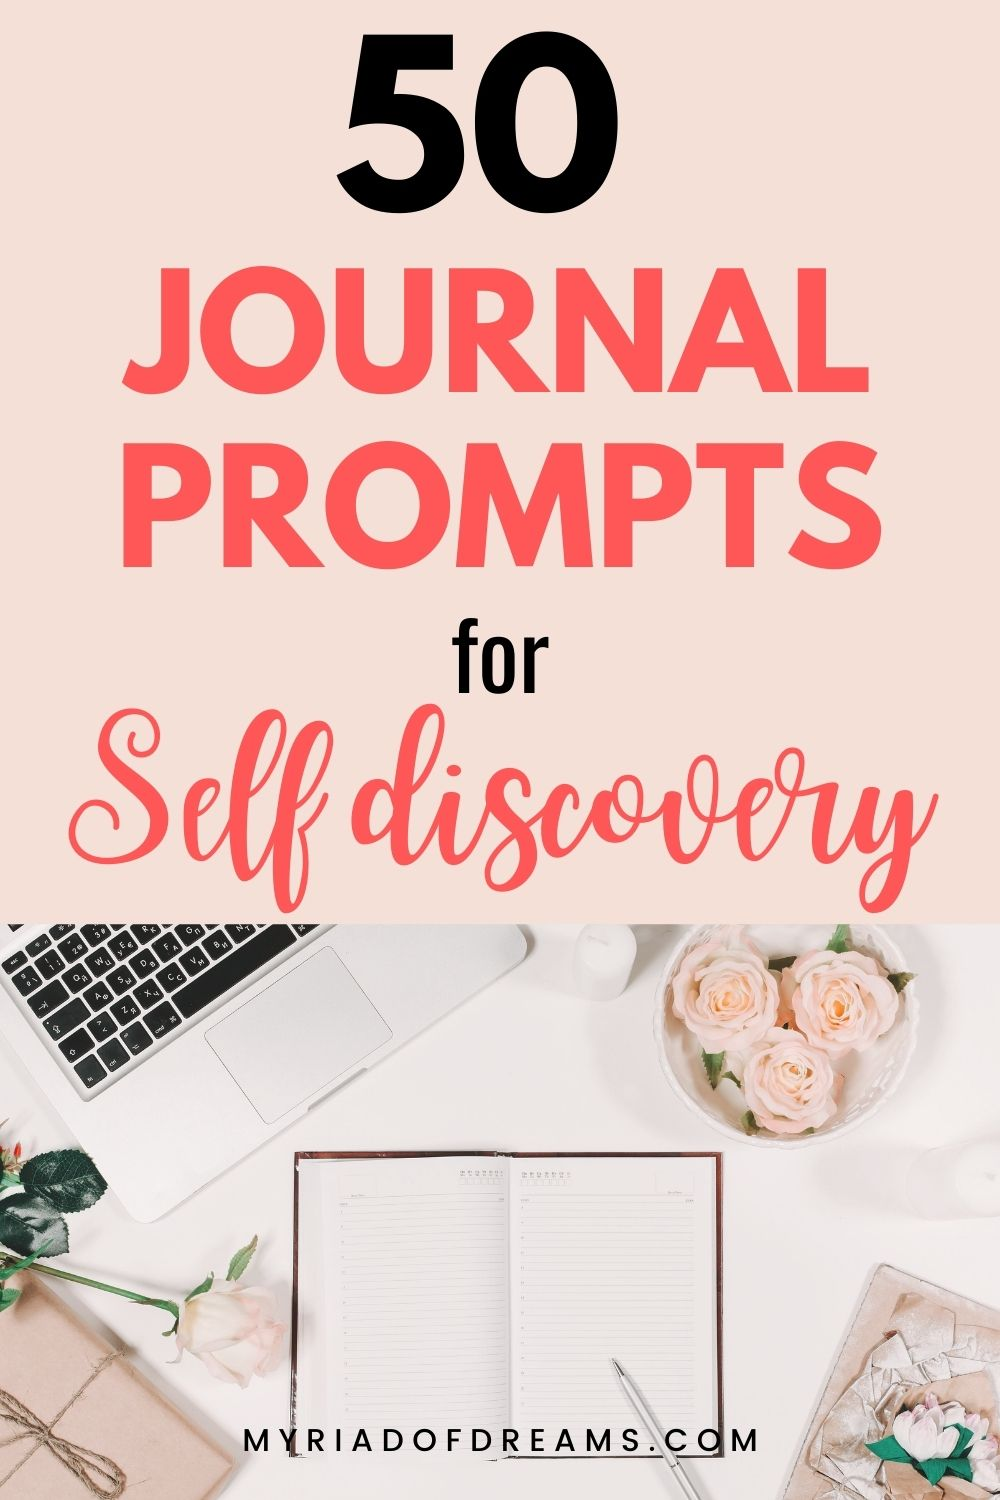 Want to start journaling but not getting ideas what to write about? Here are 50 self discovery journal prompts to help to understand your thoughts and feelings. Start your personal growth and self improvement journey with these journaling ideas. Journaling is a great way to take care of your mental health and a solid step towards self love. Journal writing prompts, journaling ideas, how to start journaling with journal prompts. #journalprompts #mentalhealth #personalgrowth #selfcare